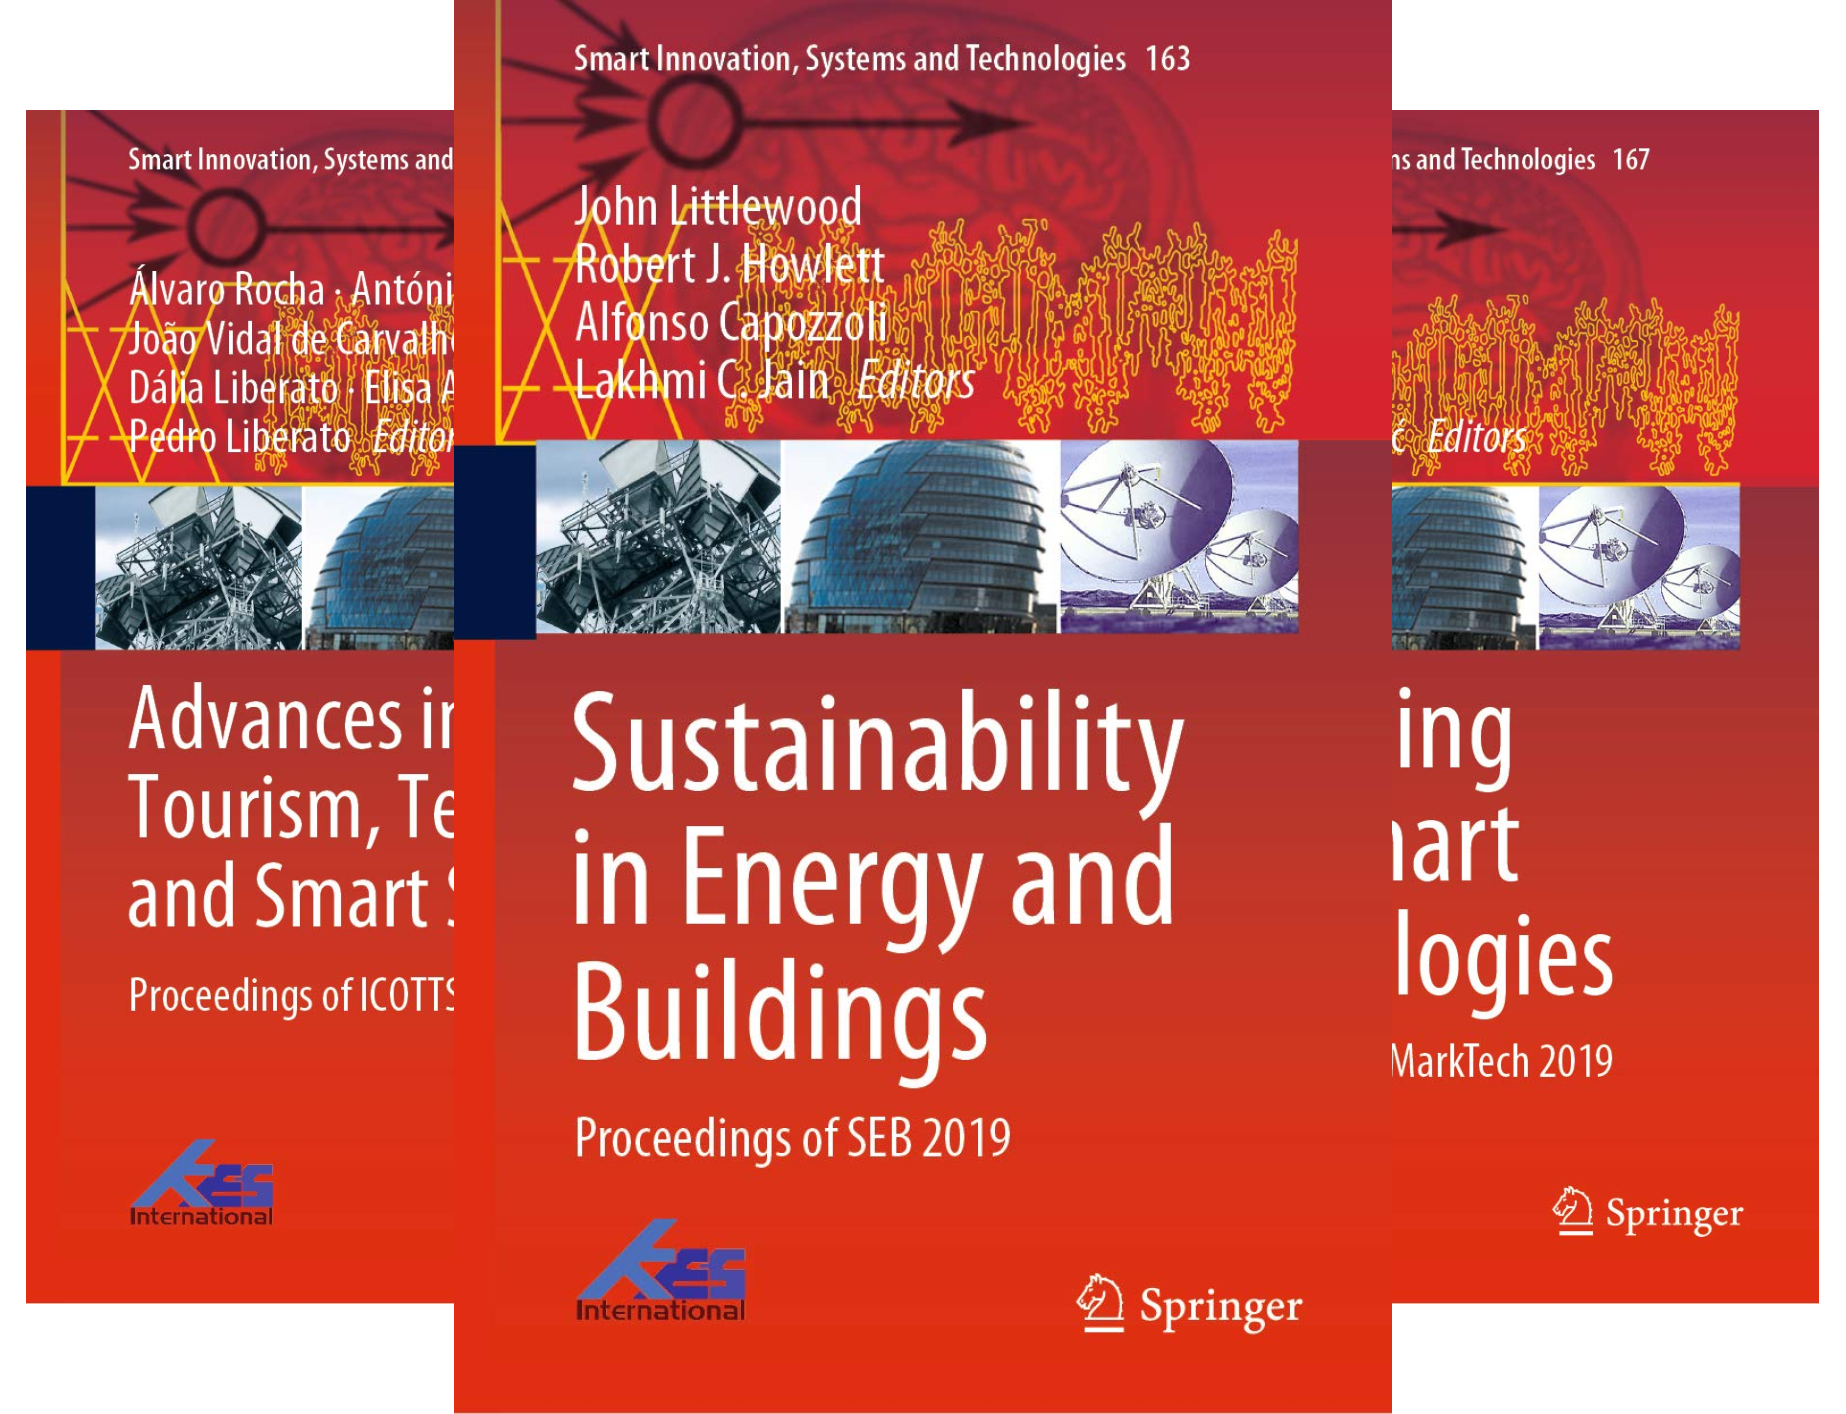 Smart Innovation, Systems and Technologies (101-147) (47 Book Series)